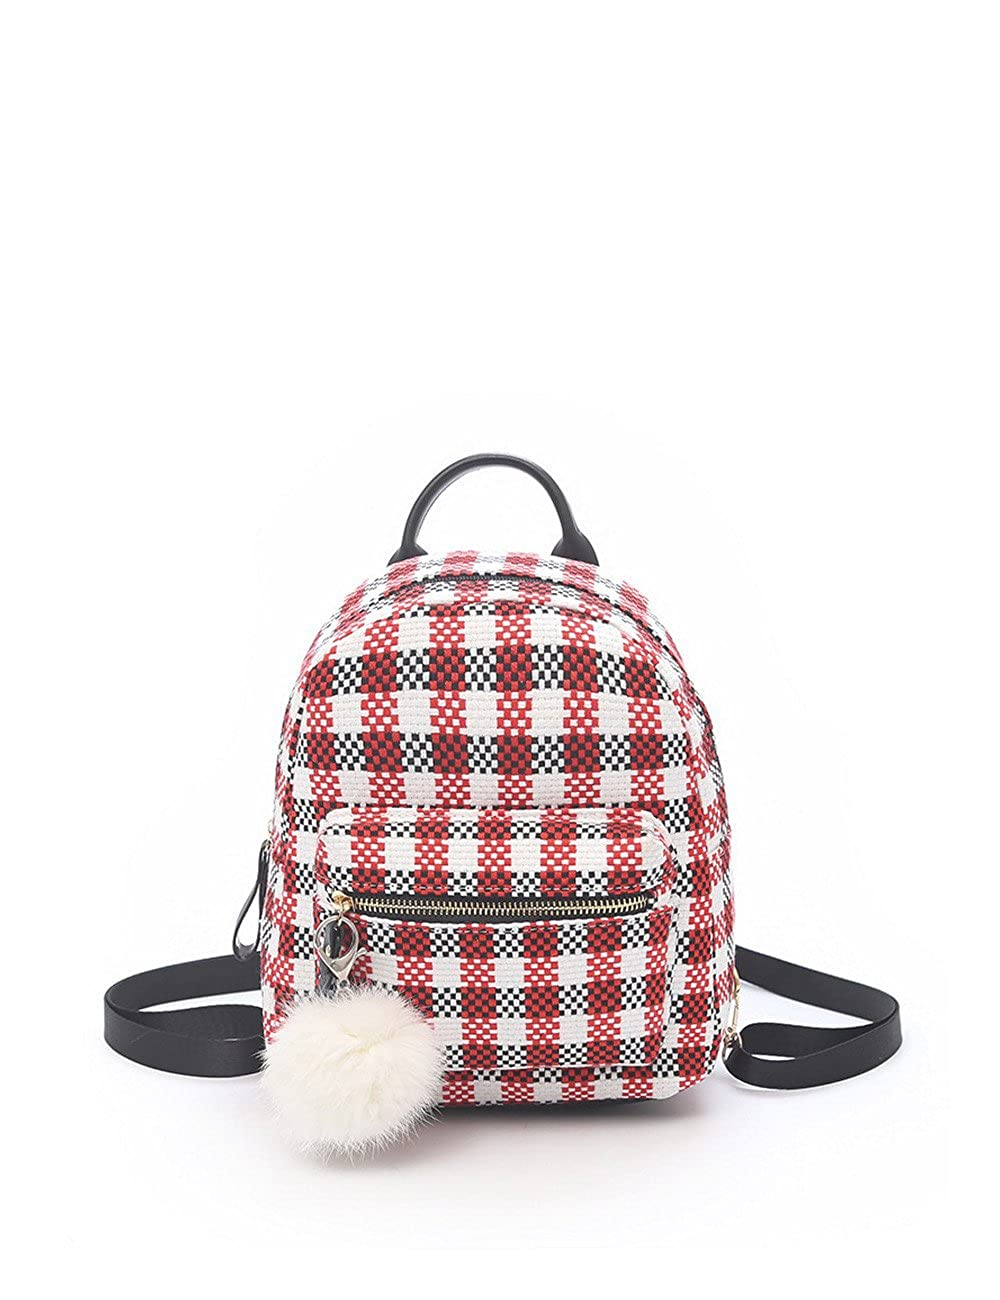 K.X.S Womens Backpack Casual Leisure Color Block Plaid Fashionable Back Bag Color Red